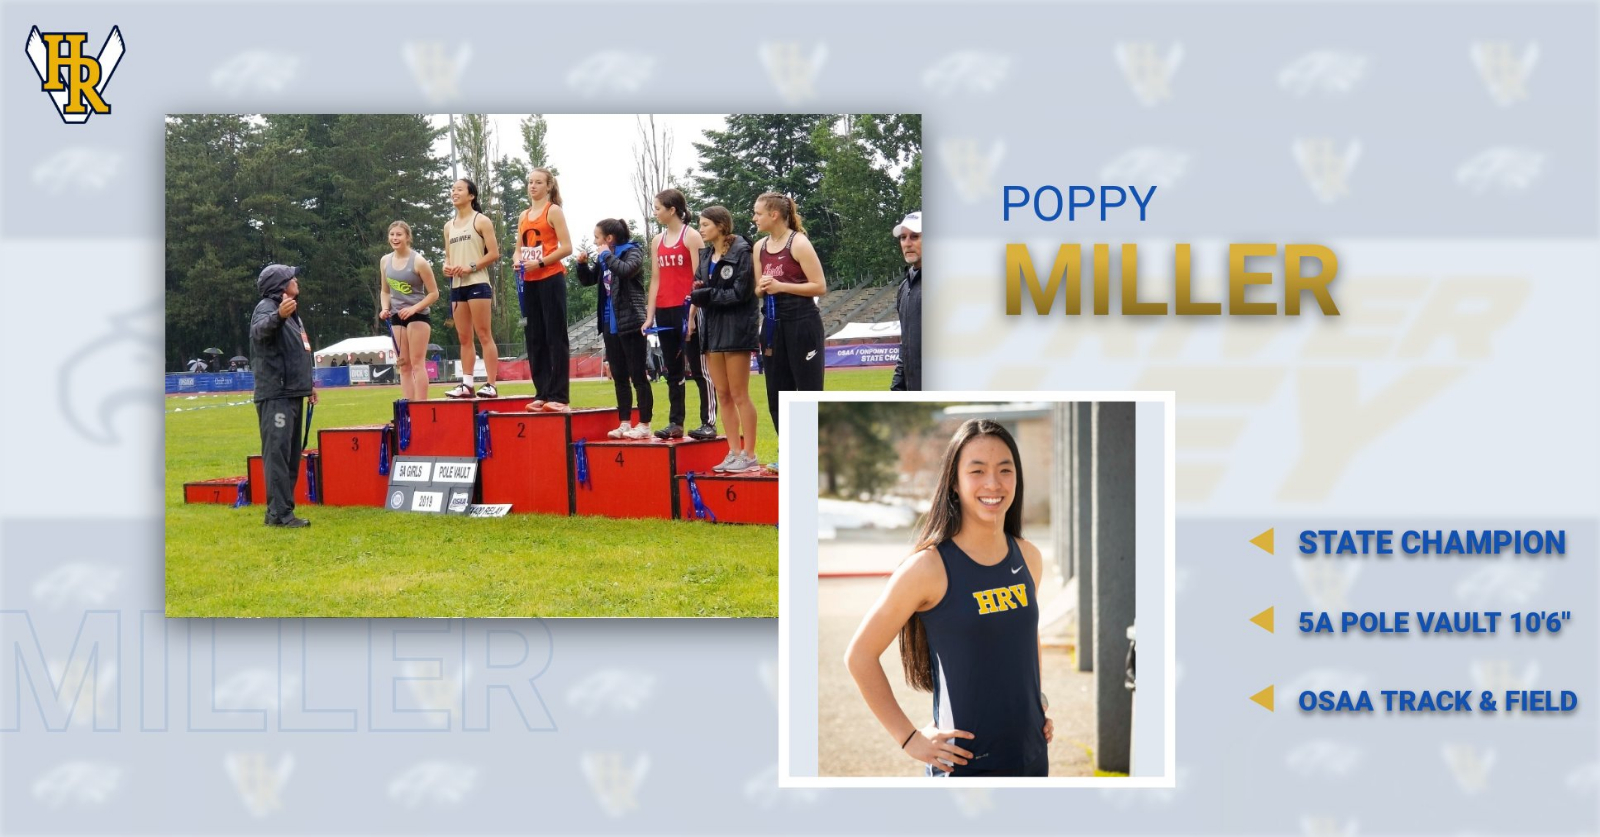 POPPY MILLER EARNS STATE CHAMPIONSHIP IN 5A POLE VAULT!